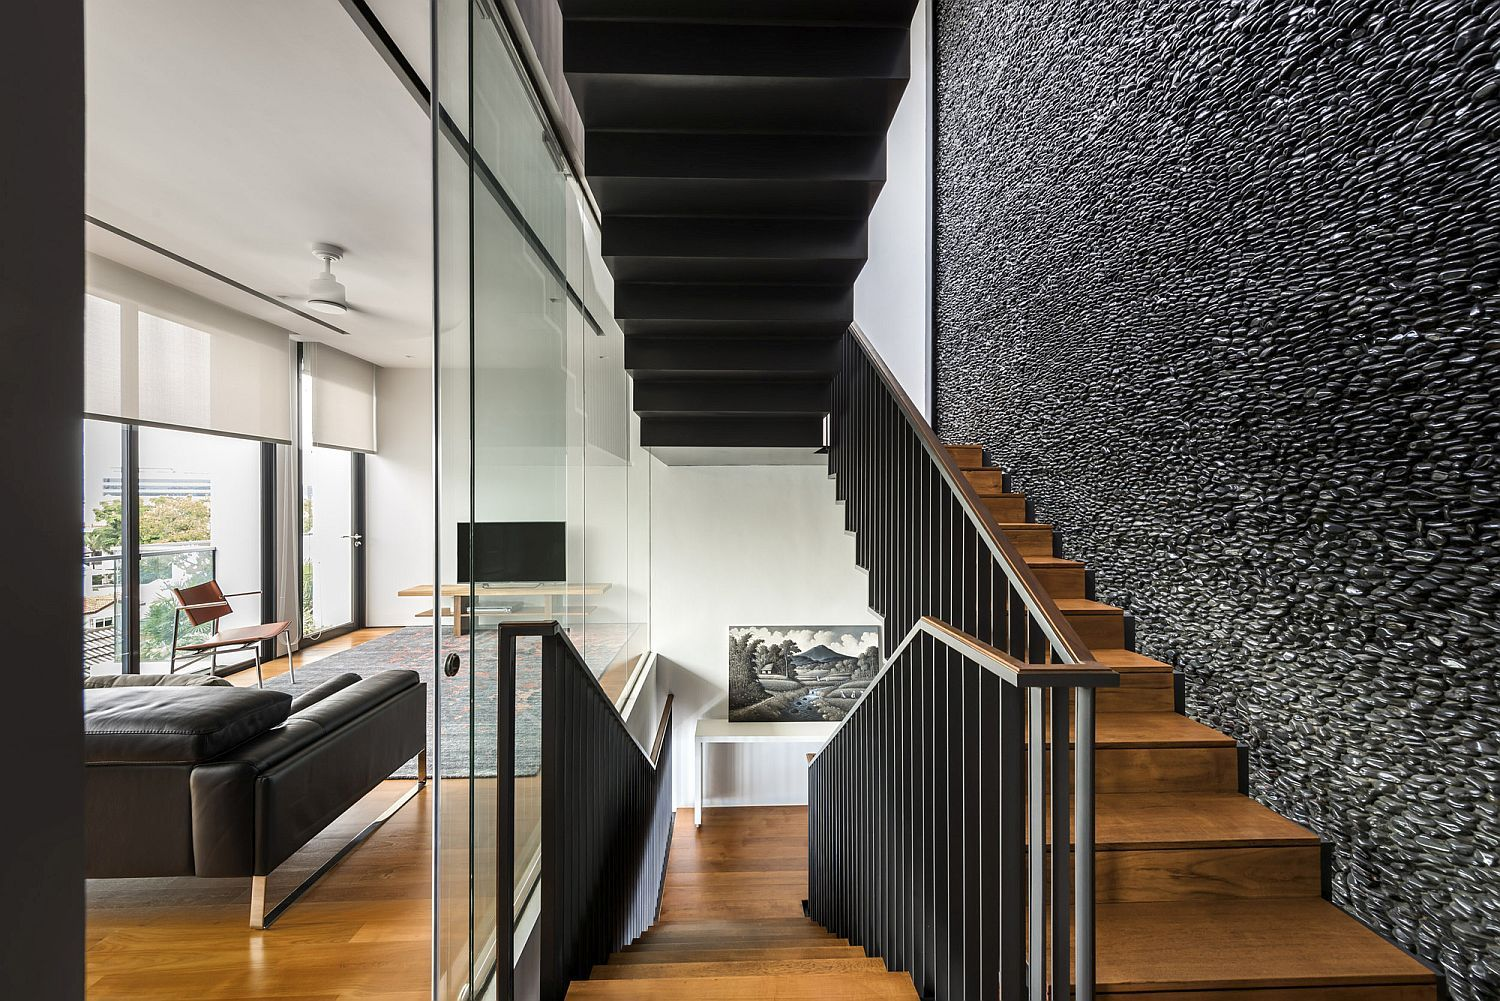 Polished Feature Wall with Black River Pebbles Captivates at Toh